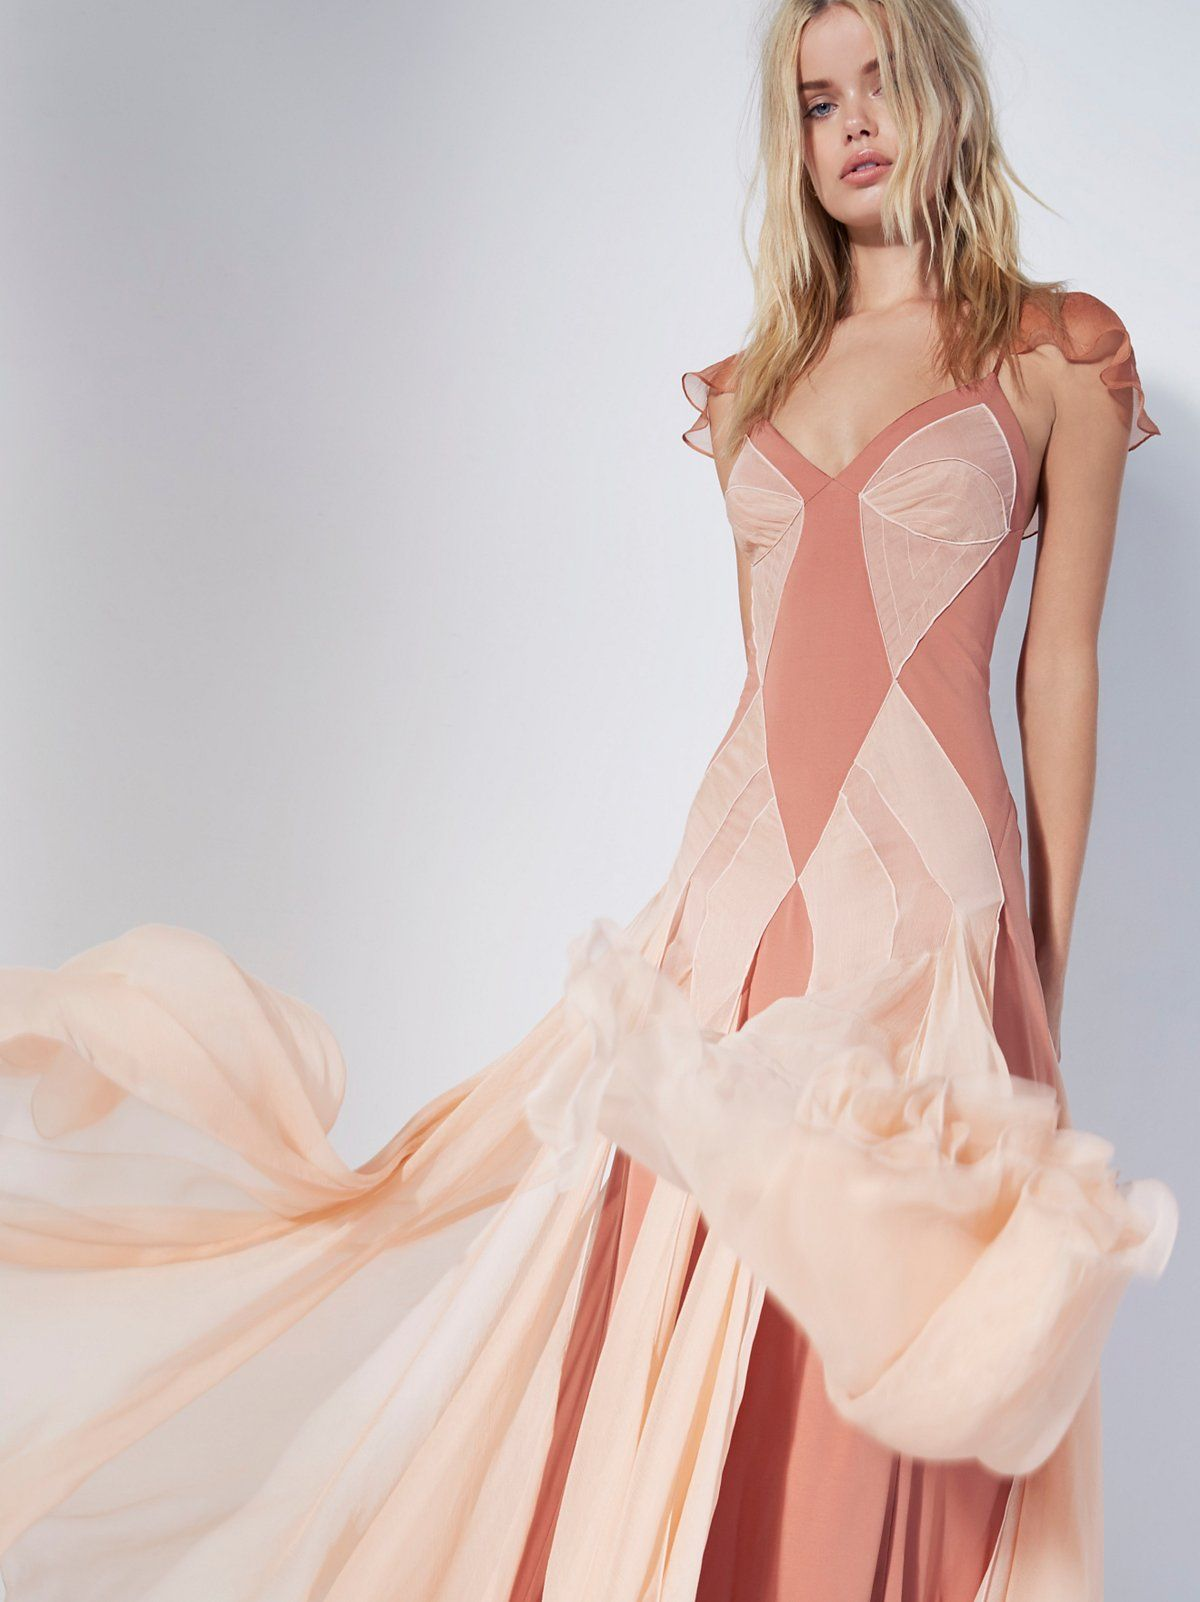 FP Limited Edition Terra Cotta Jill C's Limited Edition Maxi Dress at Free People Clothing Boutique